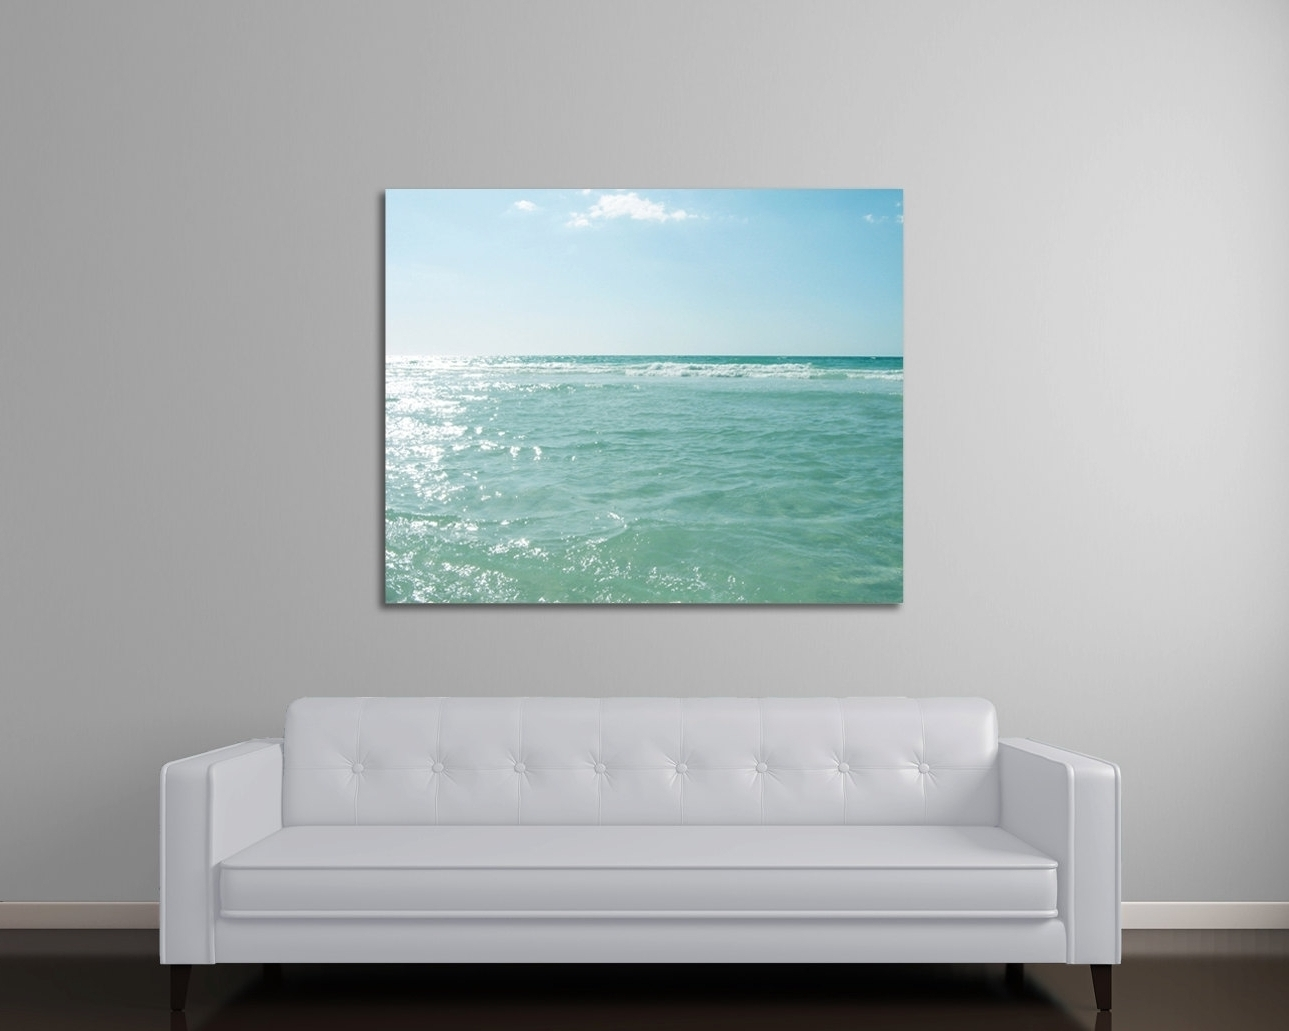 Best And Newest Wall Art: Extraordinary Beachy Wall Art Beach House Wall Decor To With Beach Cottage Wall Art (View 3 of 15)